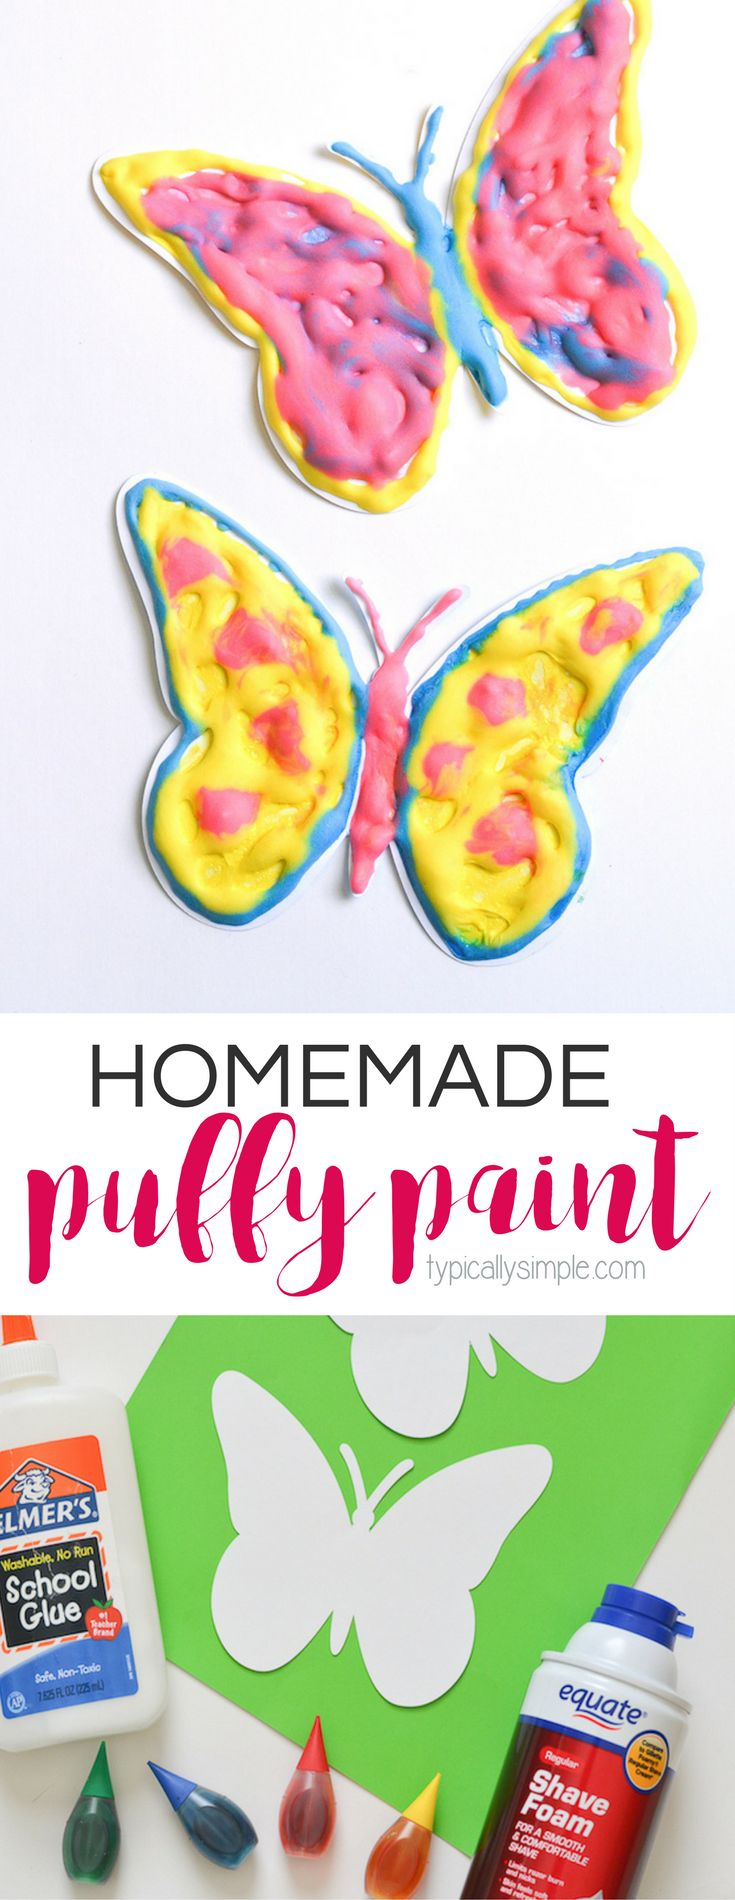 Grab a few basic supplies to make this fun homemade puffy paint with the kids!